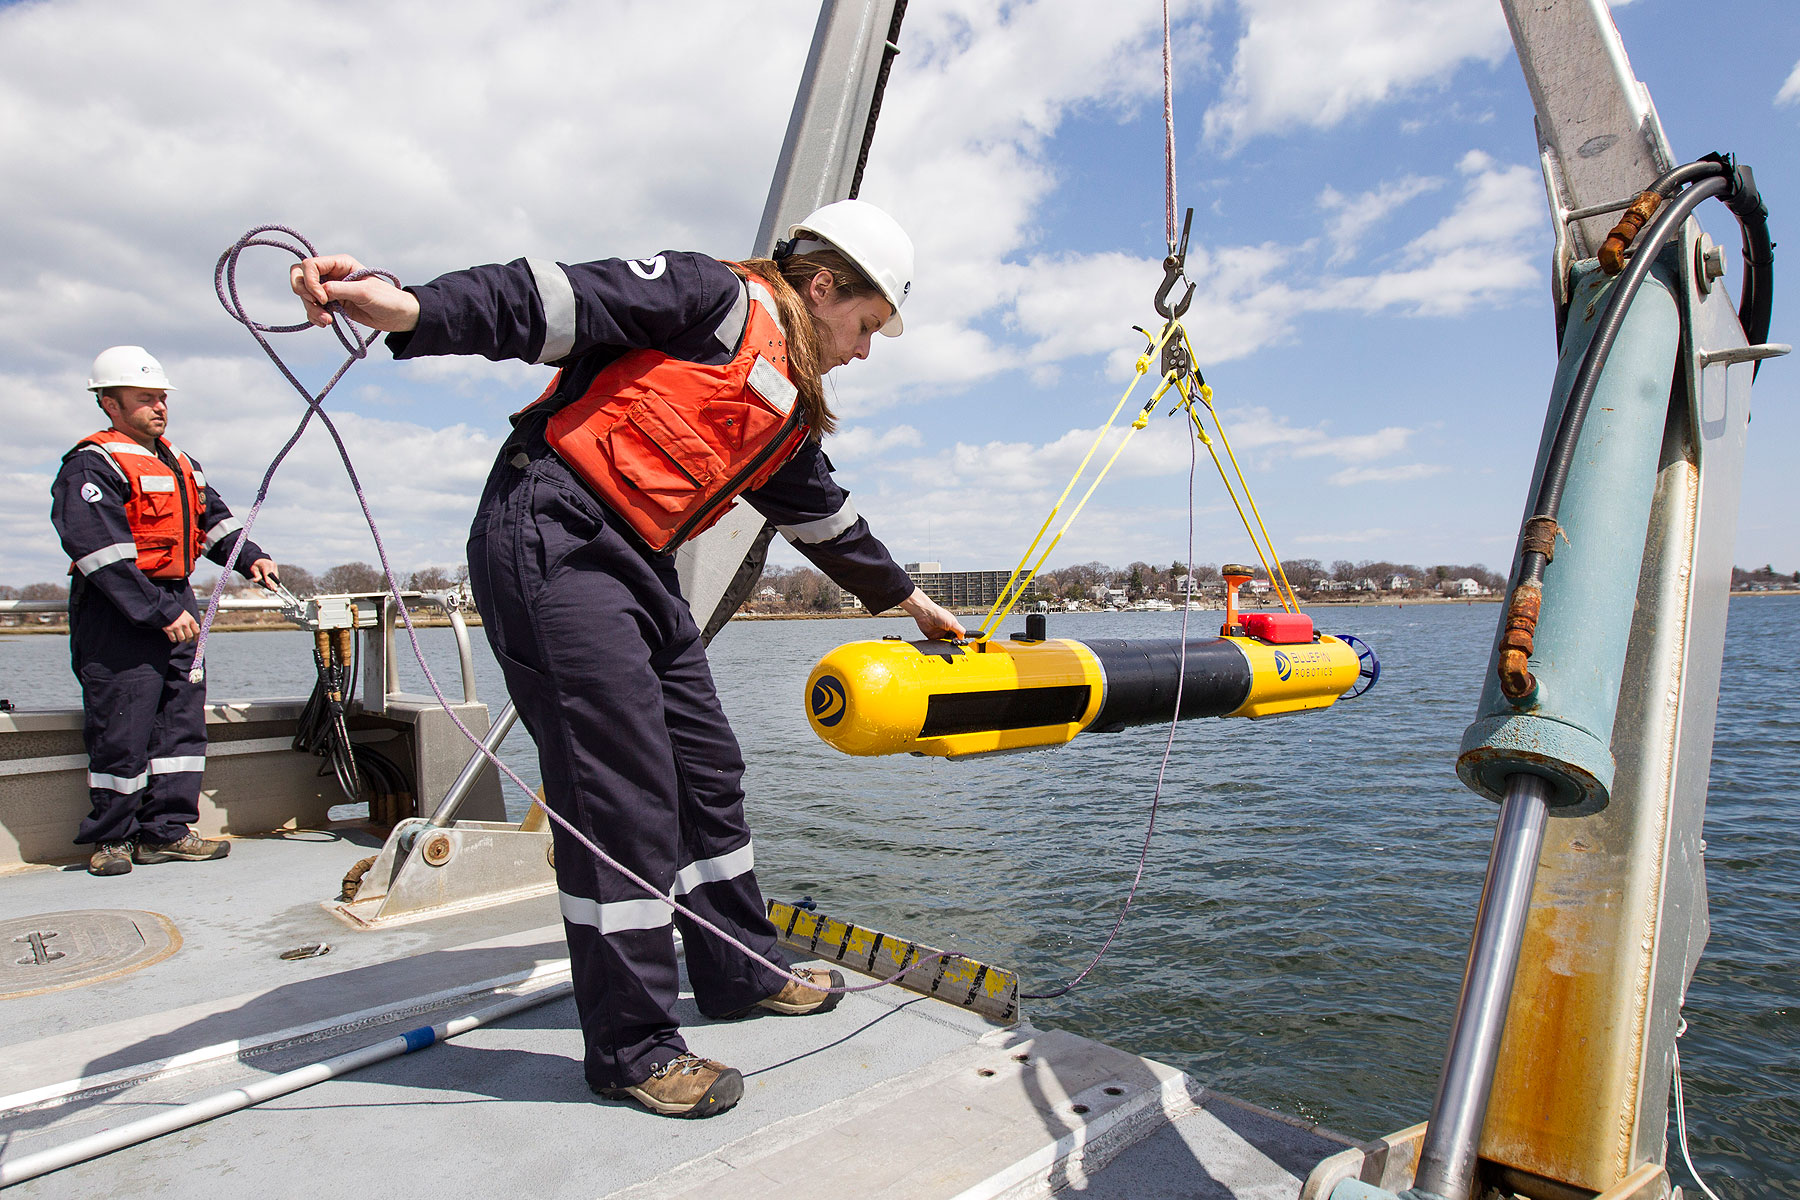 A submarine built by Bluefin Robotics is lowered into the water by a systems engineer in Quincy, Mass., April 9, 2014